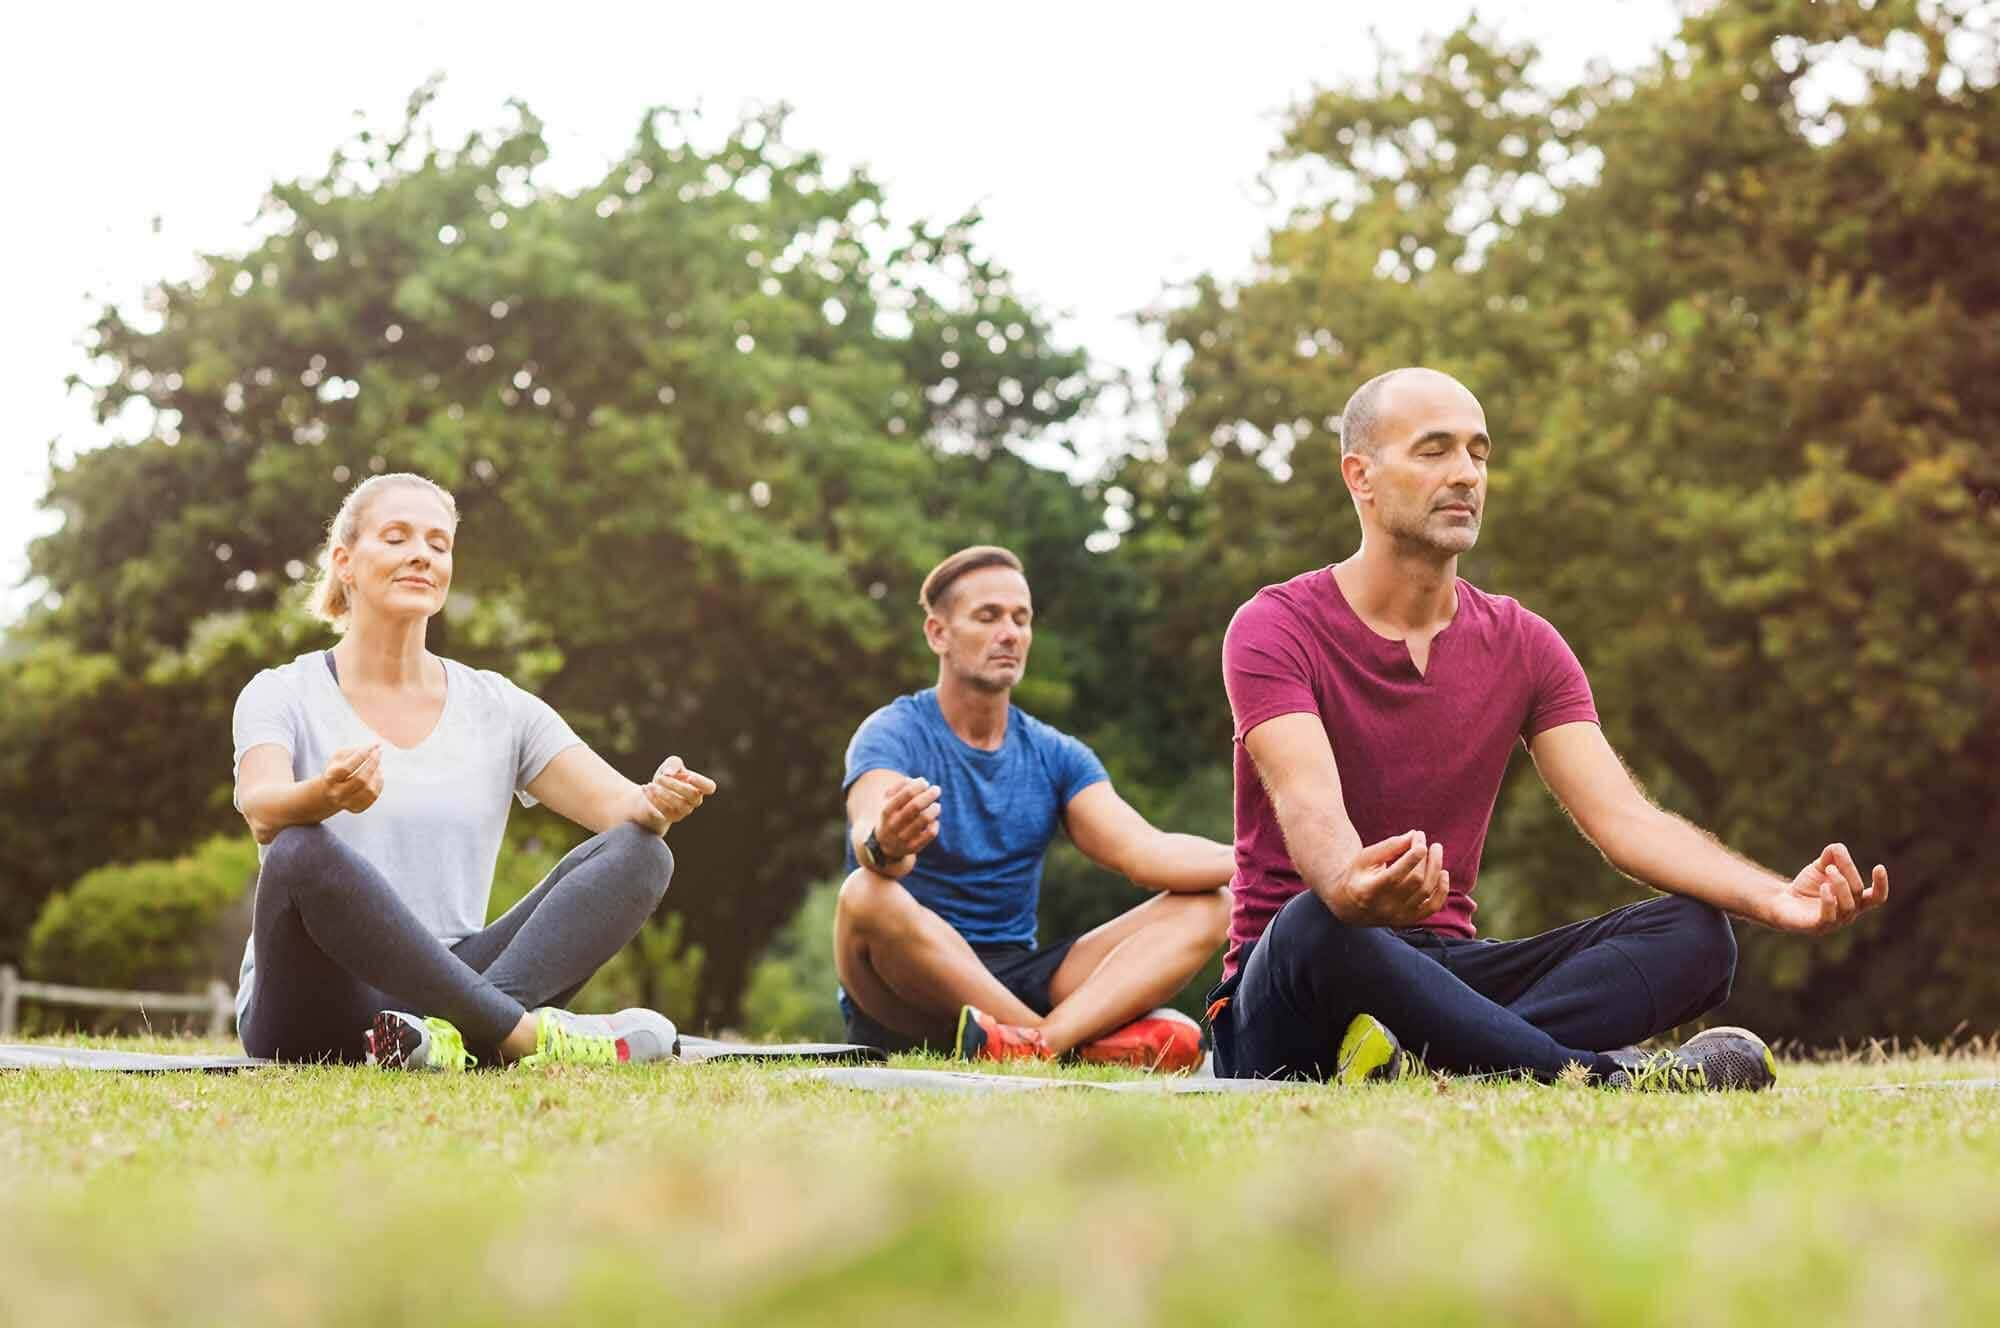 Meditation for holistic healing from drug and alcohol abuse.